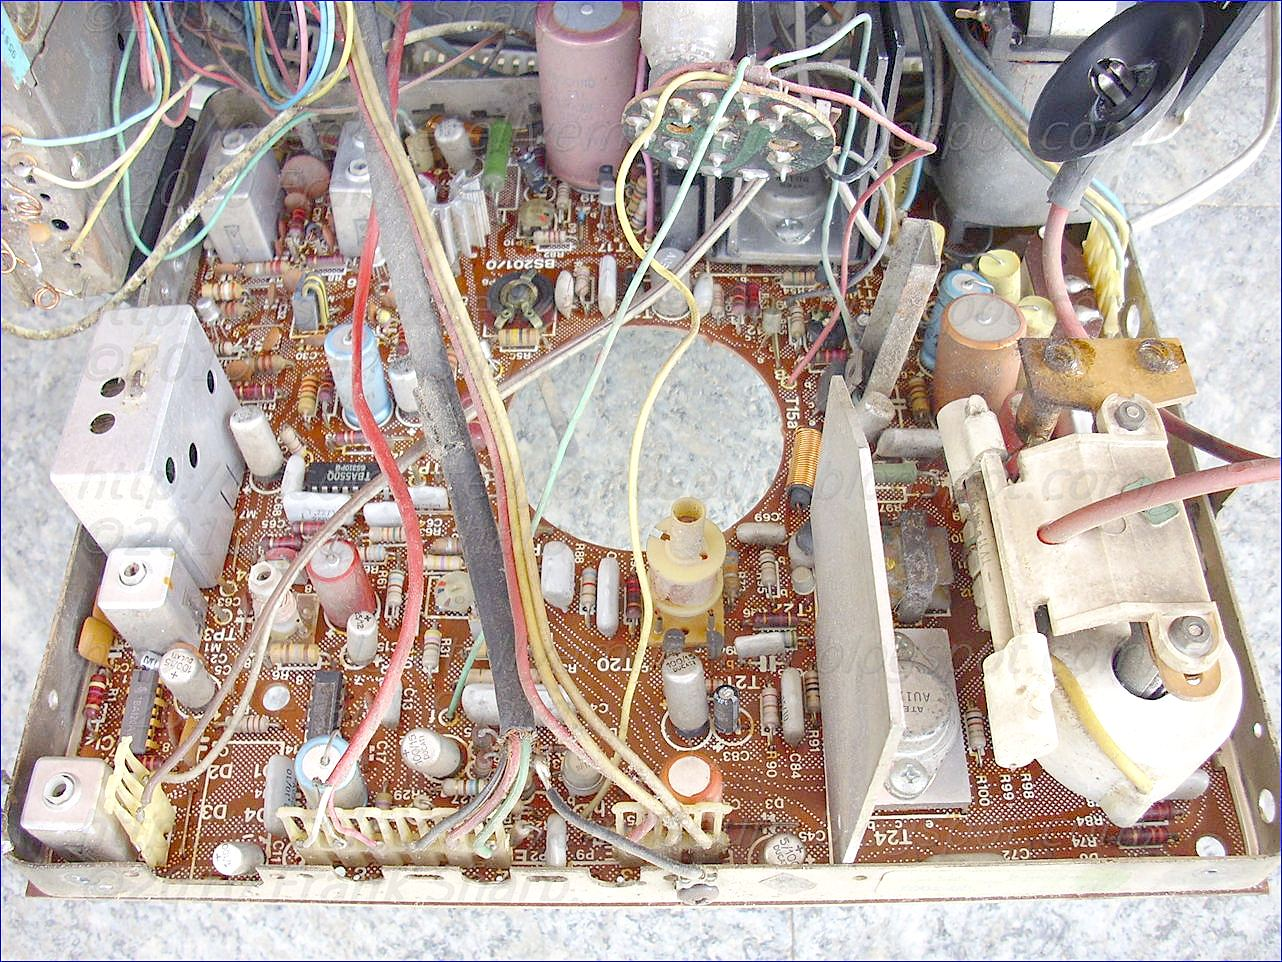 Obsolete Technology Tellye Rex Mod L12 Chassis Bs2010 Internal 5 Volt Voltage Regulator Circuit At A Value Of Approximately Volts Assuming For Example The B Is Equal To 100 And Collector Coupled Tap 365 On Transfor